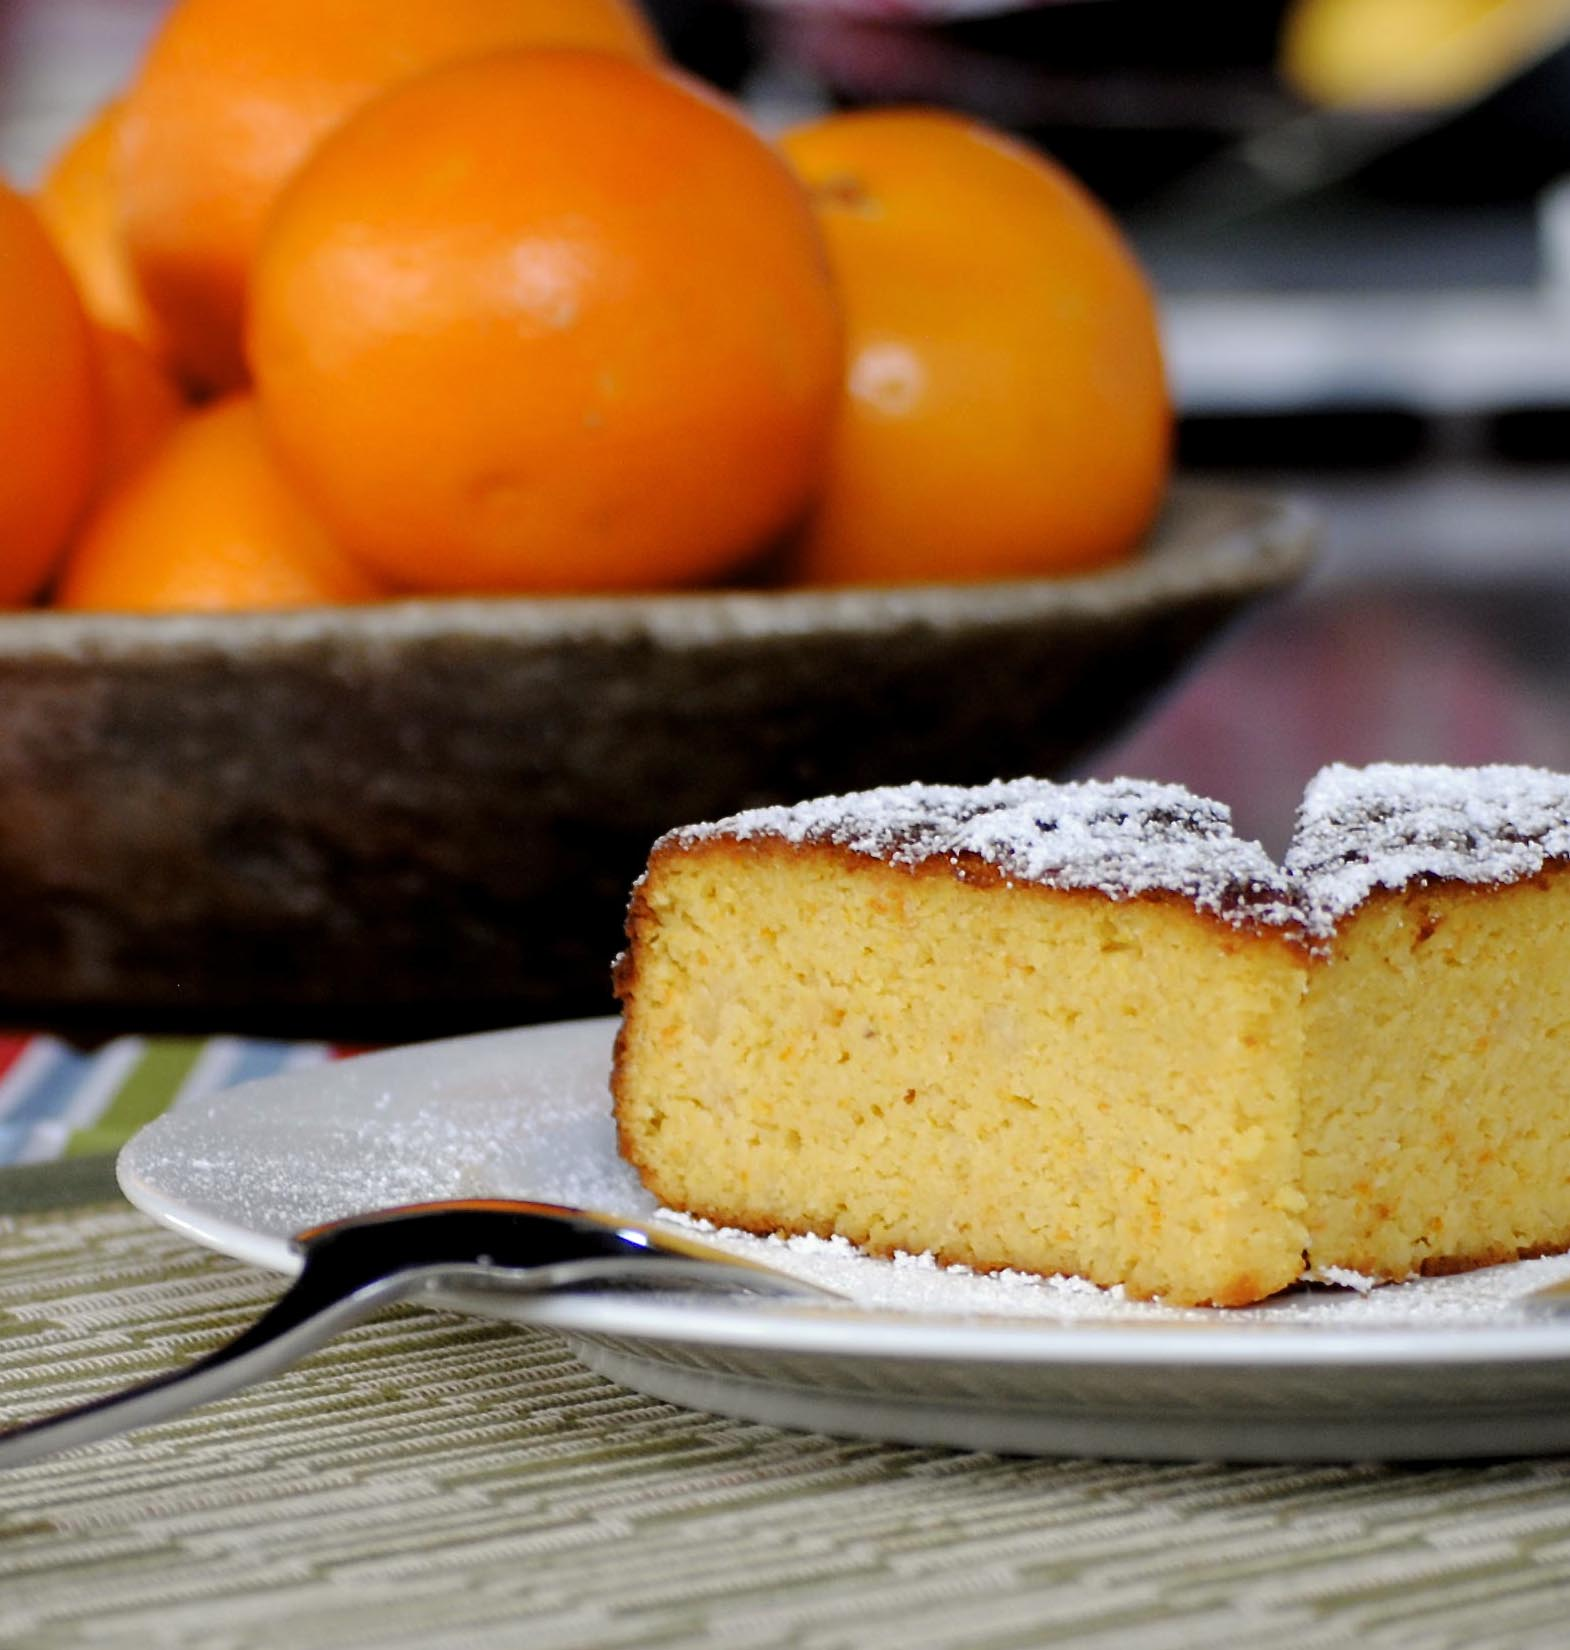 When life gives you lemons, bake a flourless orange cake